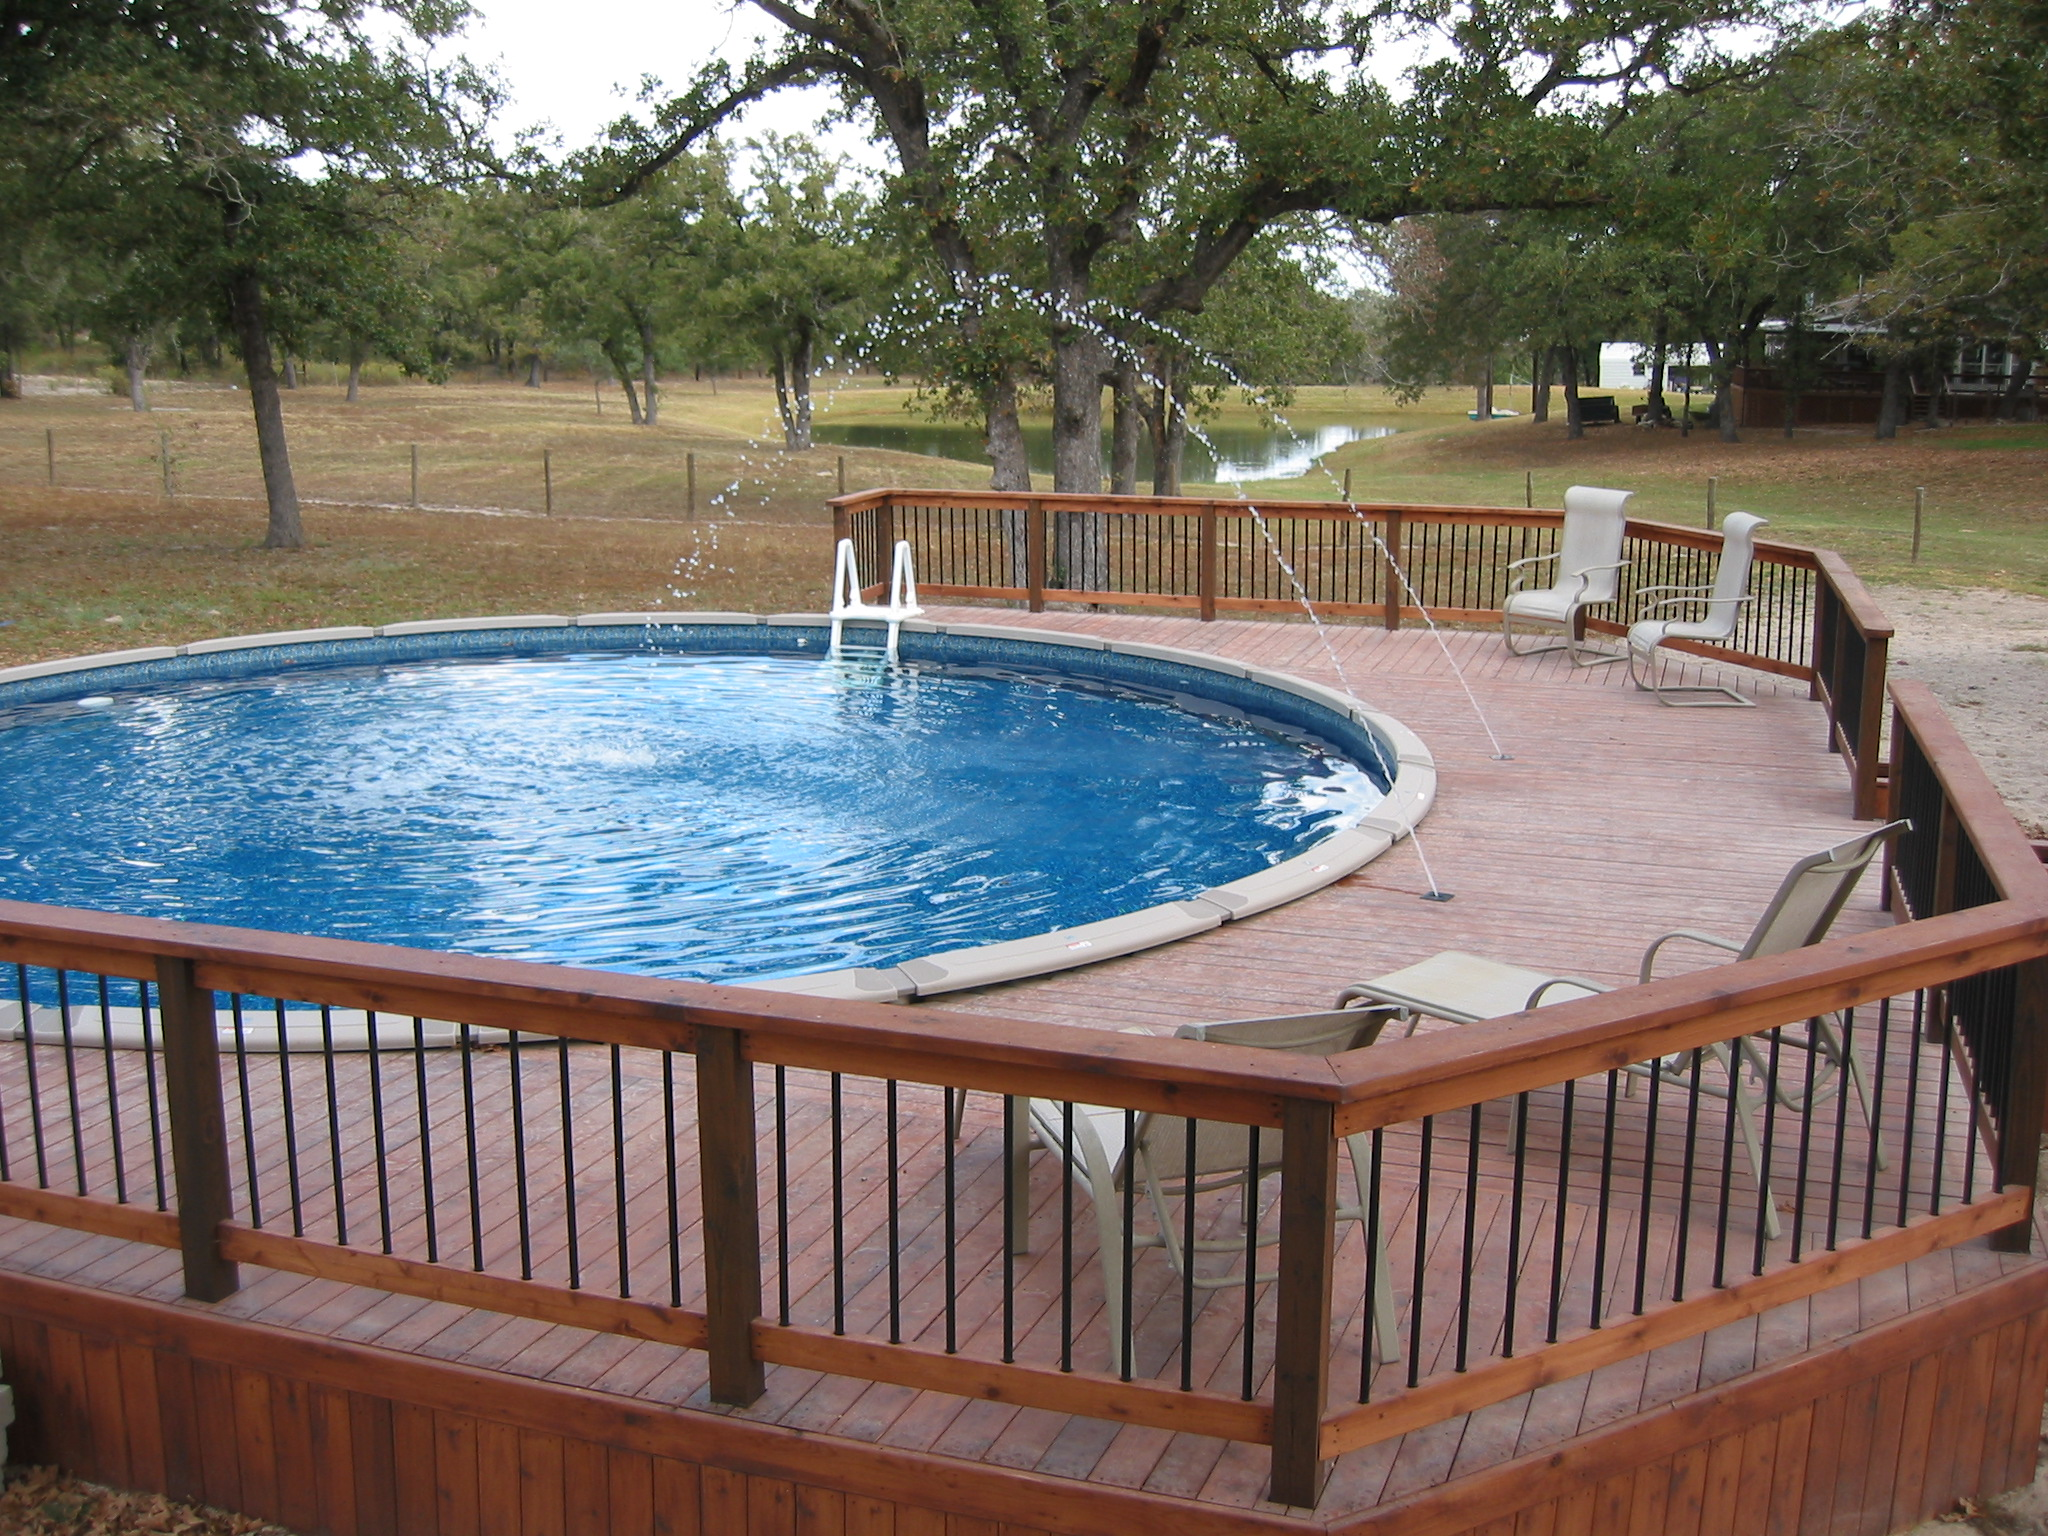 Above Ground Pool Deck Jets And Dark Blue Liner Lavernia Tx Flickr Photo Sharing